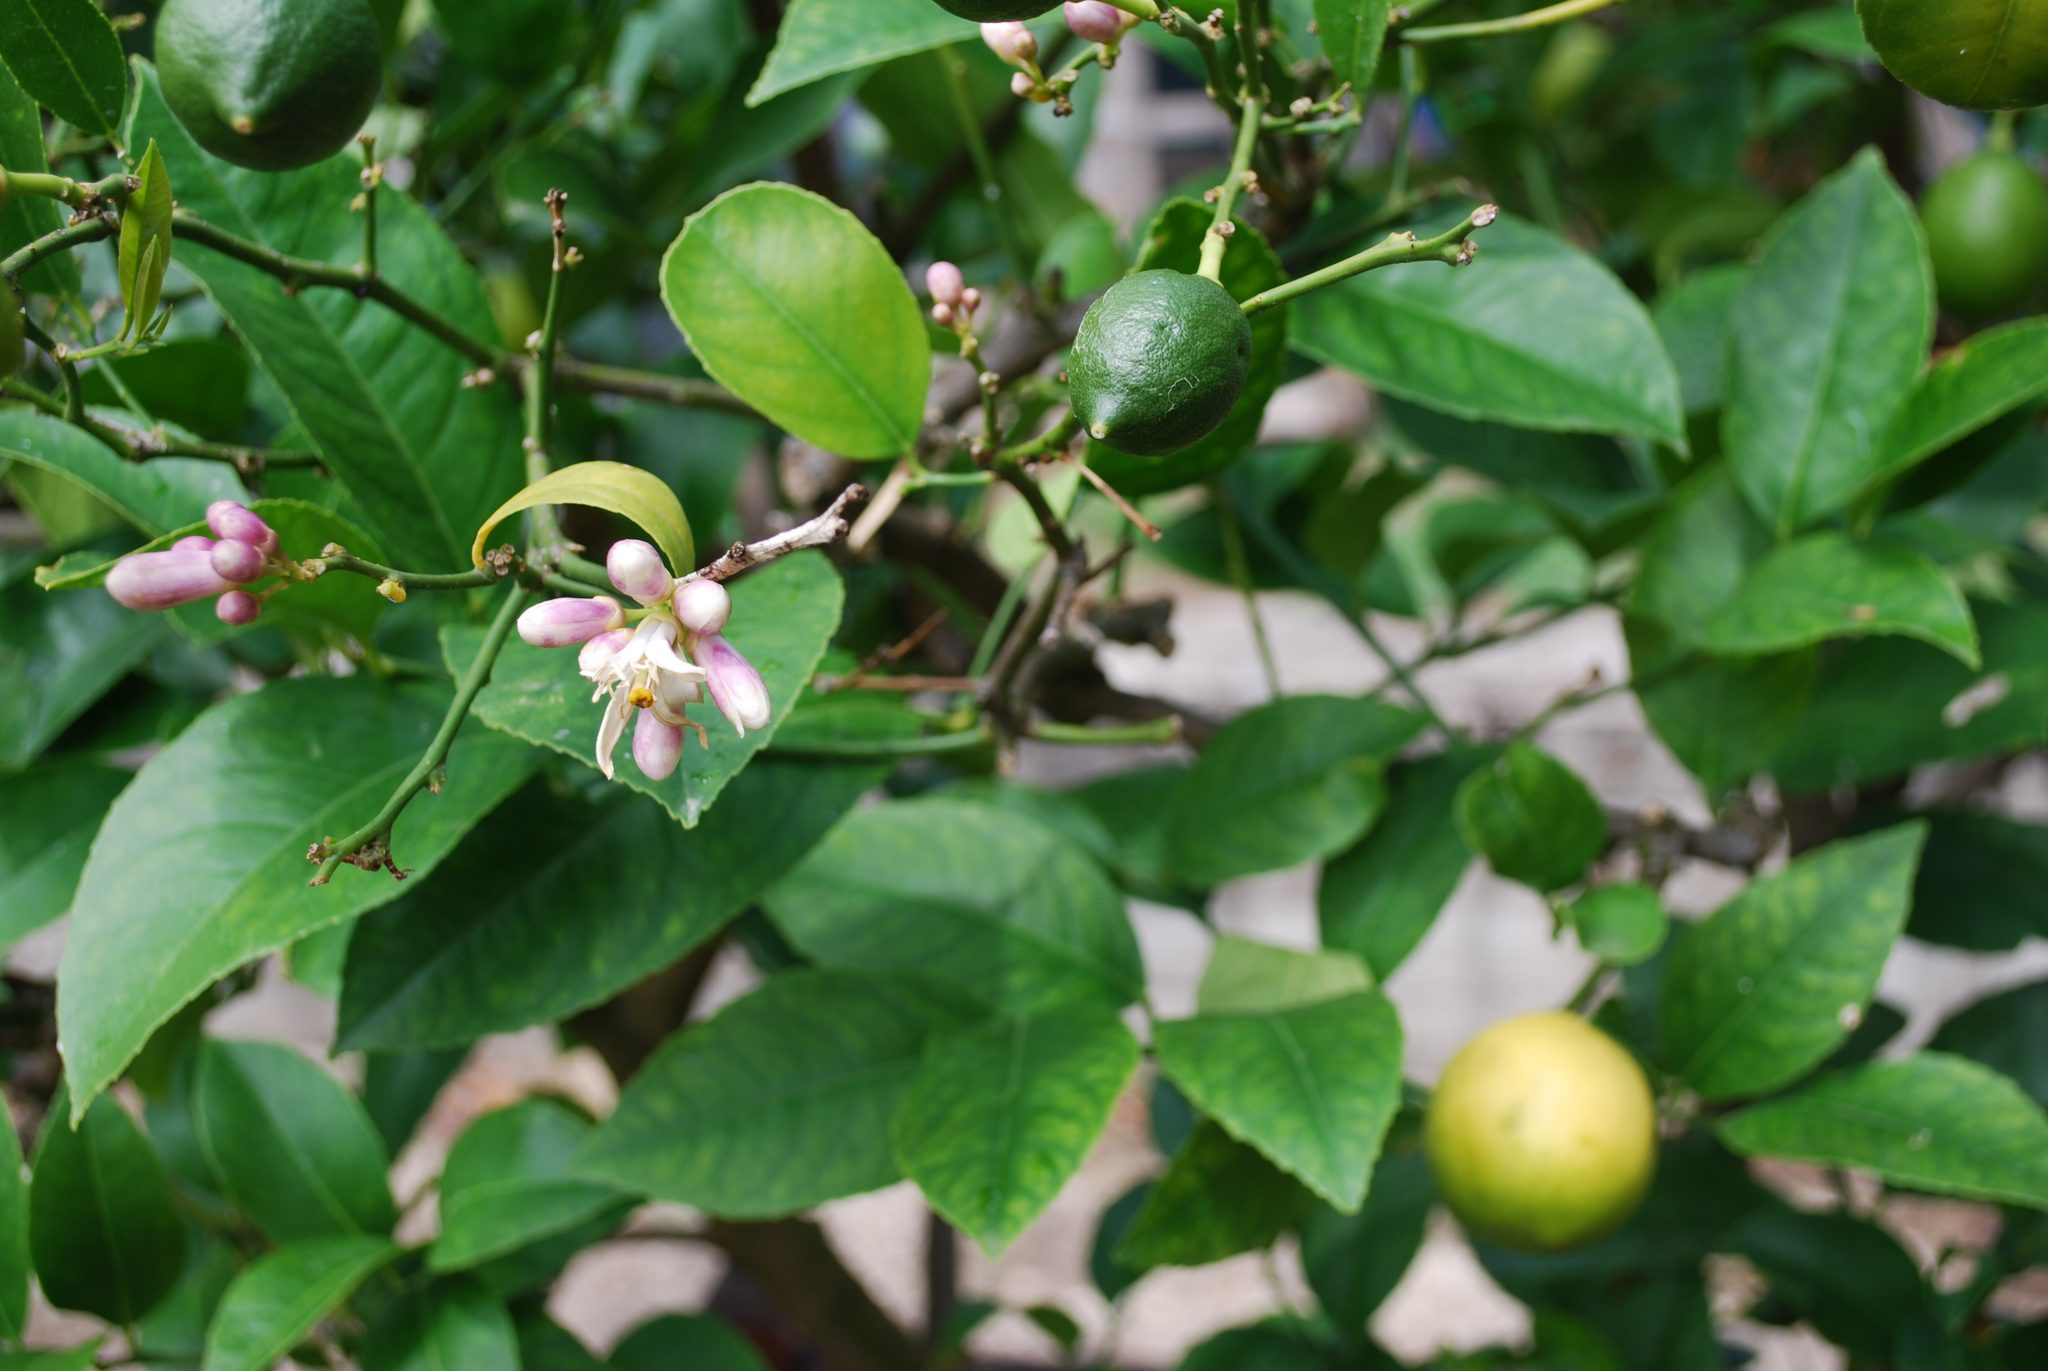 Citronnier attention aux parasites jardin pratique for Jardin citronnier